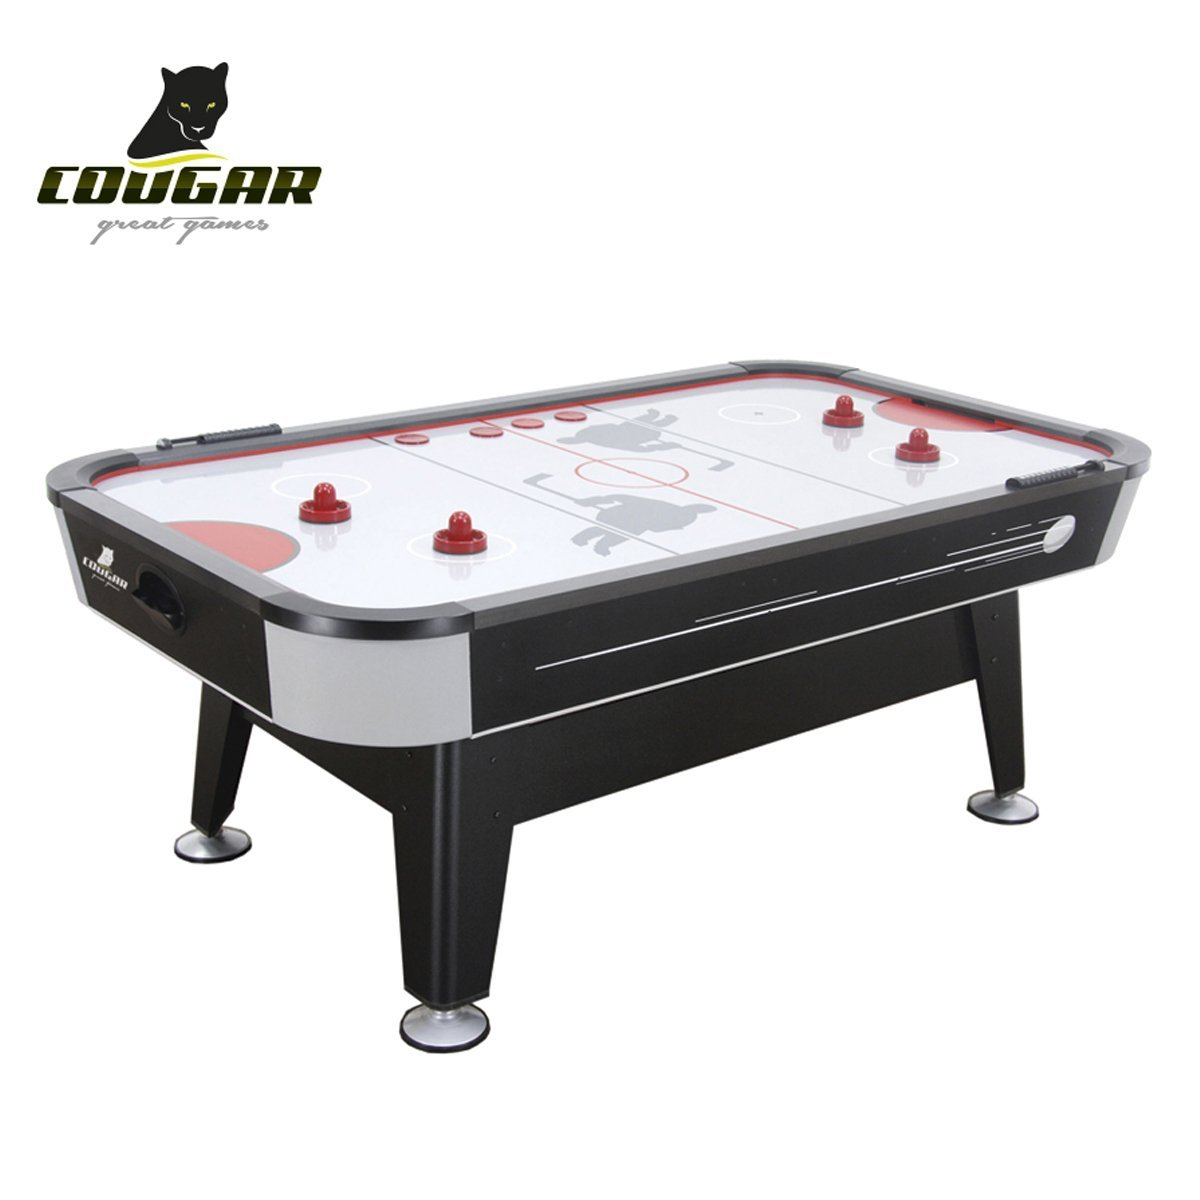 Cougar Super scoop Airhockey